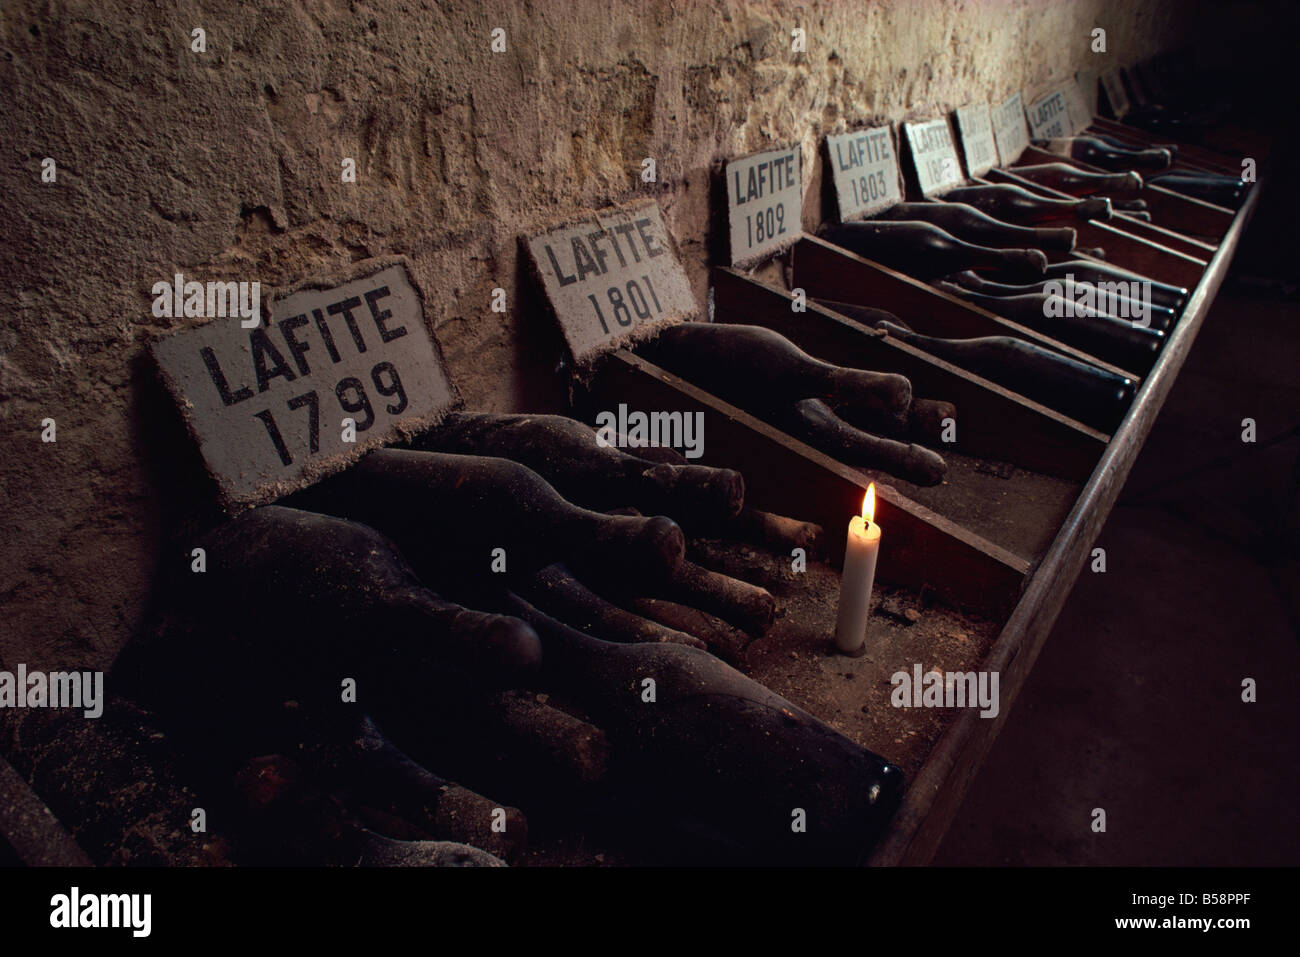 Cellars of Chateau Lafite Rothschild, Bordeaux, Aquitaine, France, Europe - Stock Image